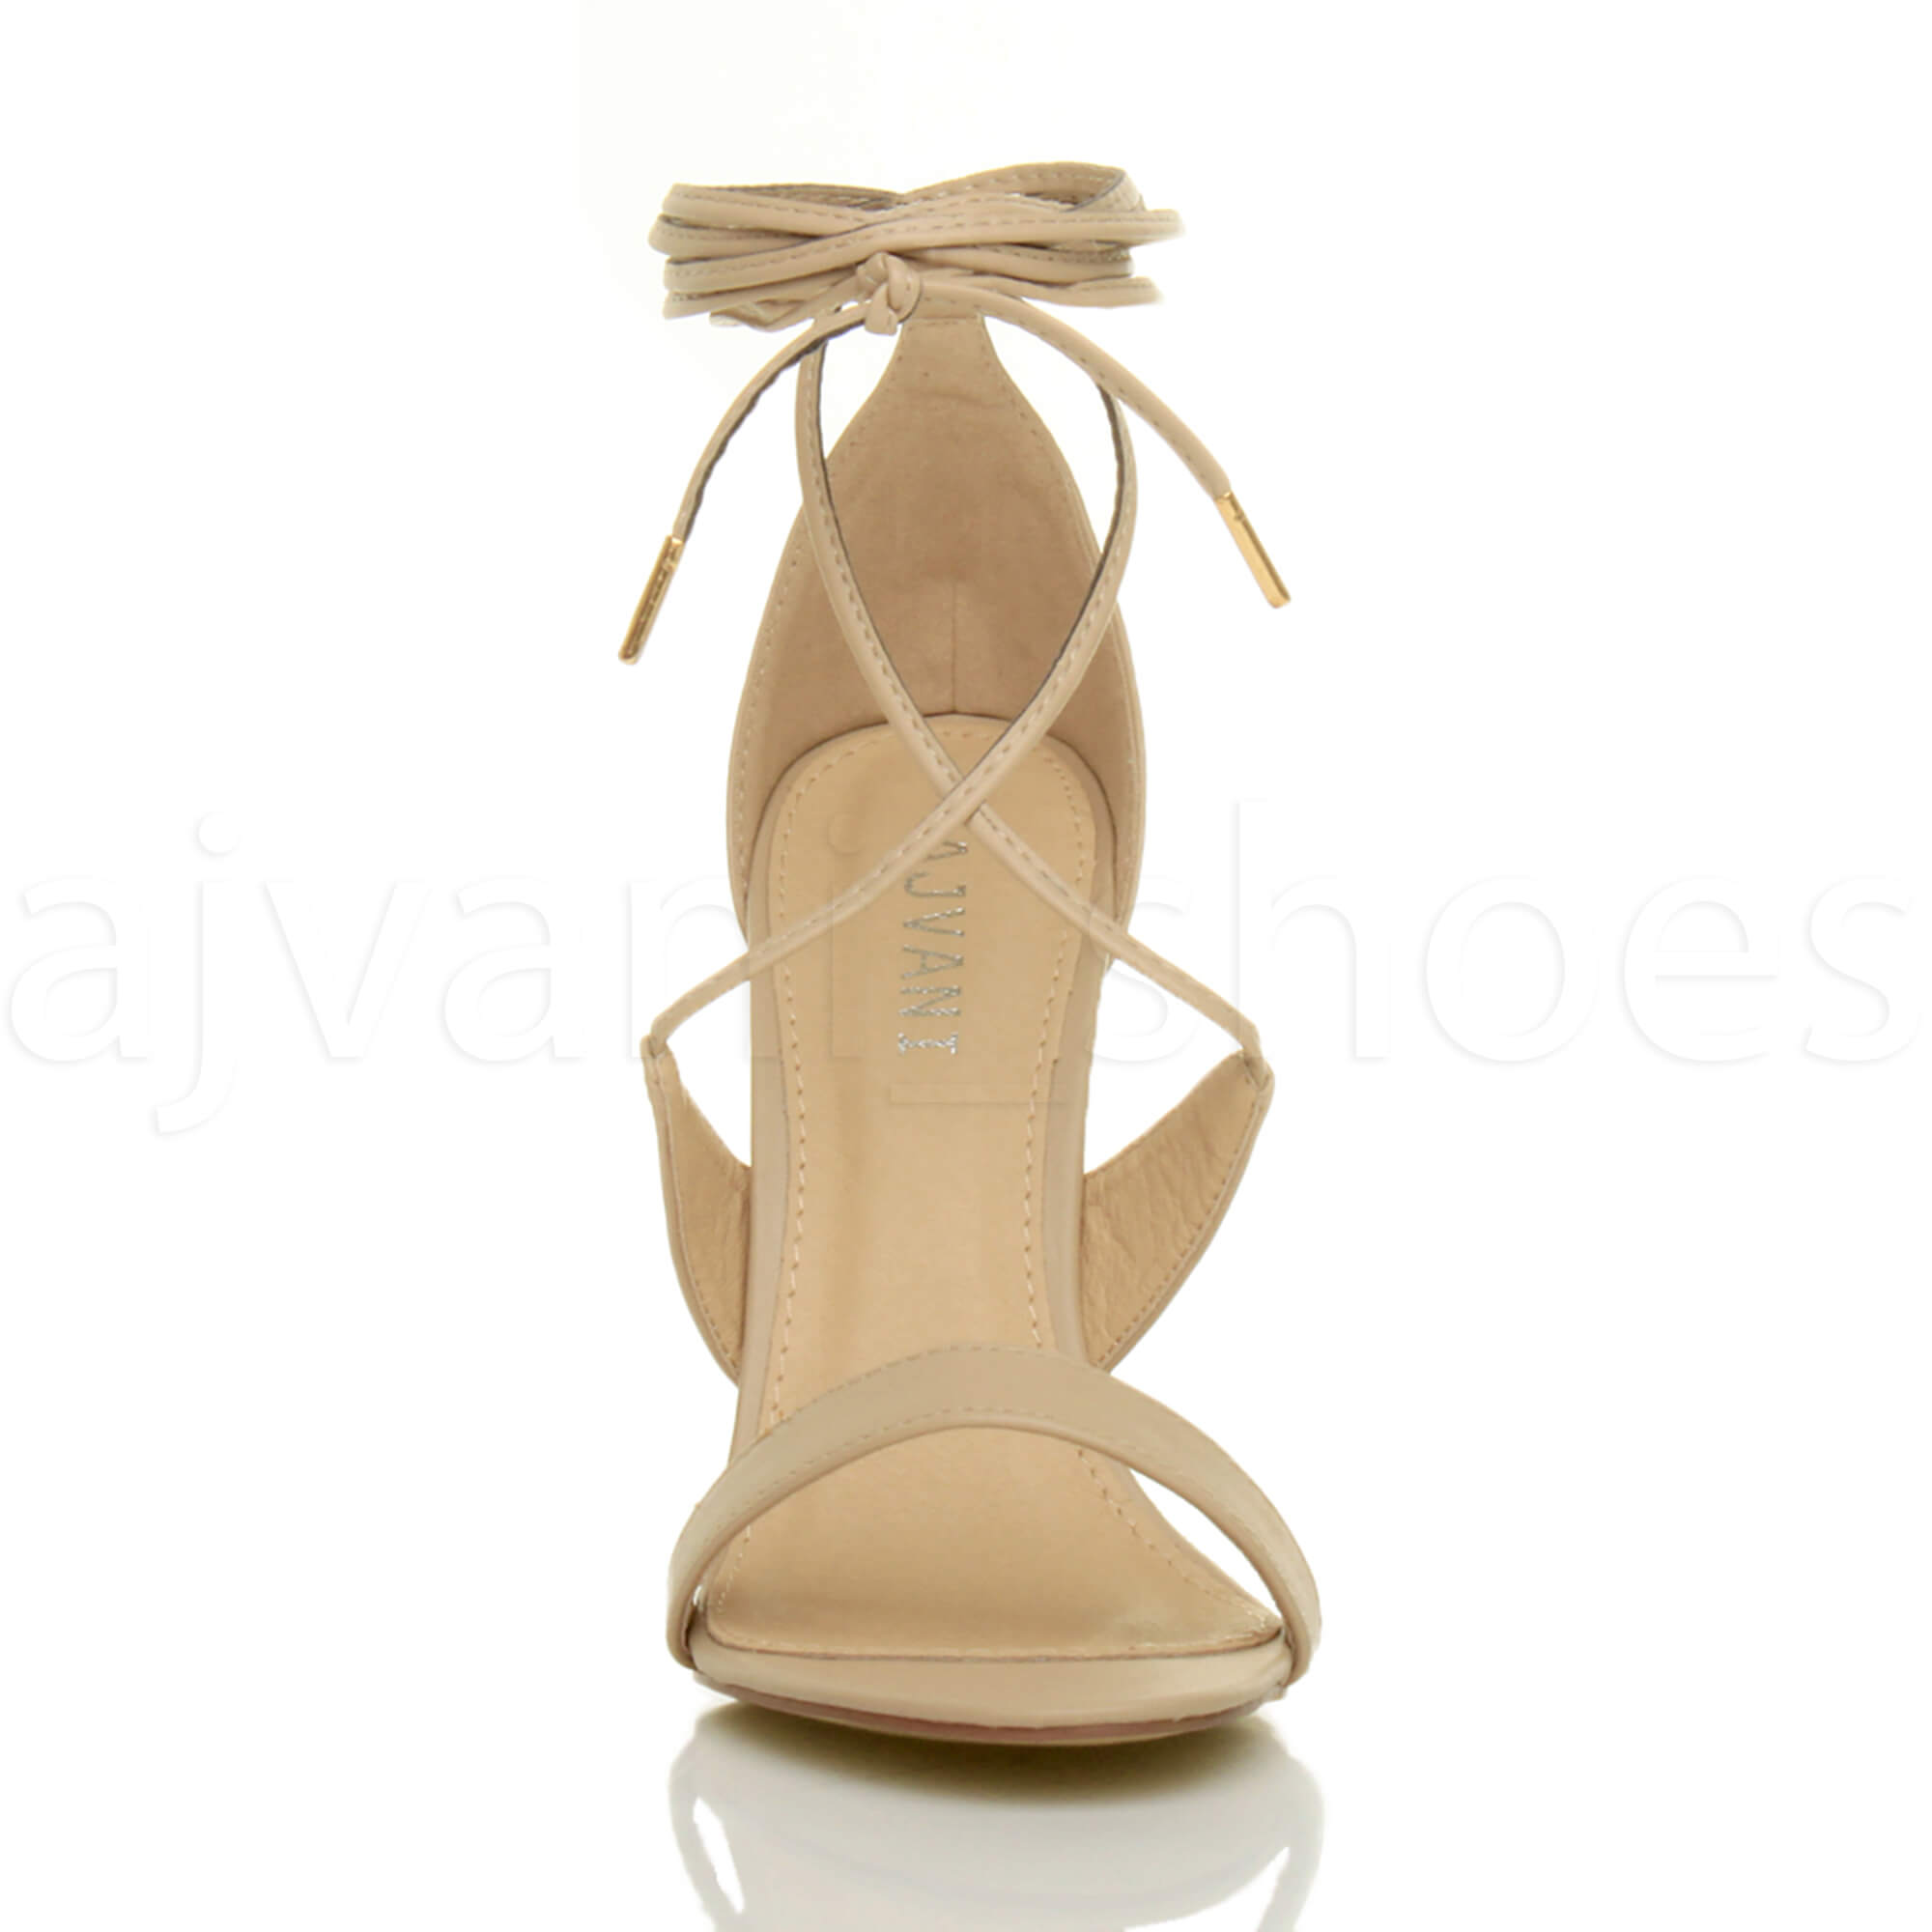 WOMENS-LADIES-HIGH-HEEL-BARELY-THERE-STRAPPY-LACE-TIE-UP-SANDALS-SHOES-SIZE thumbnail 37